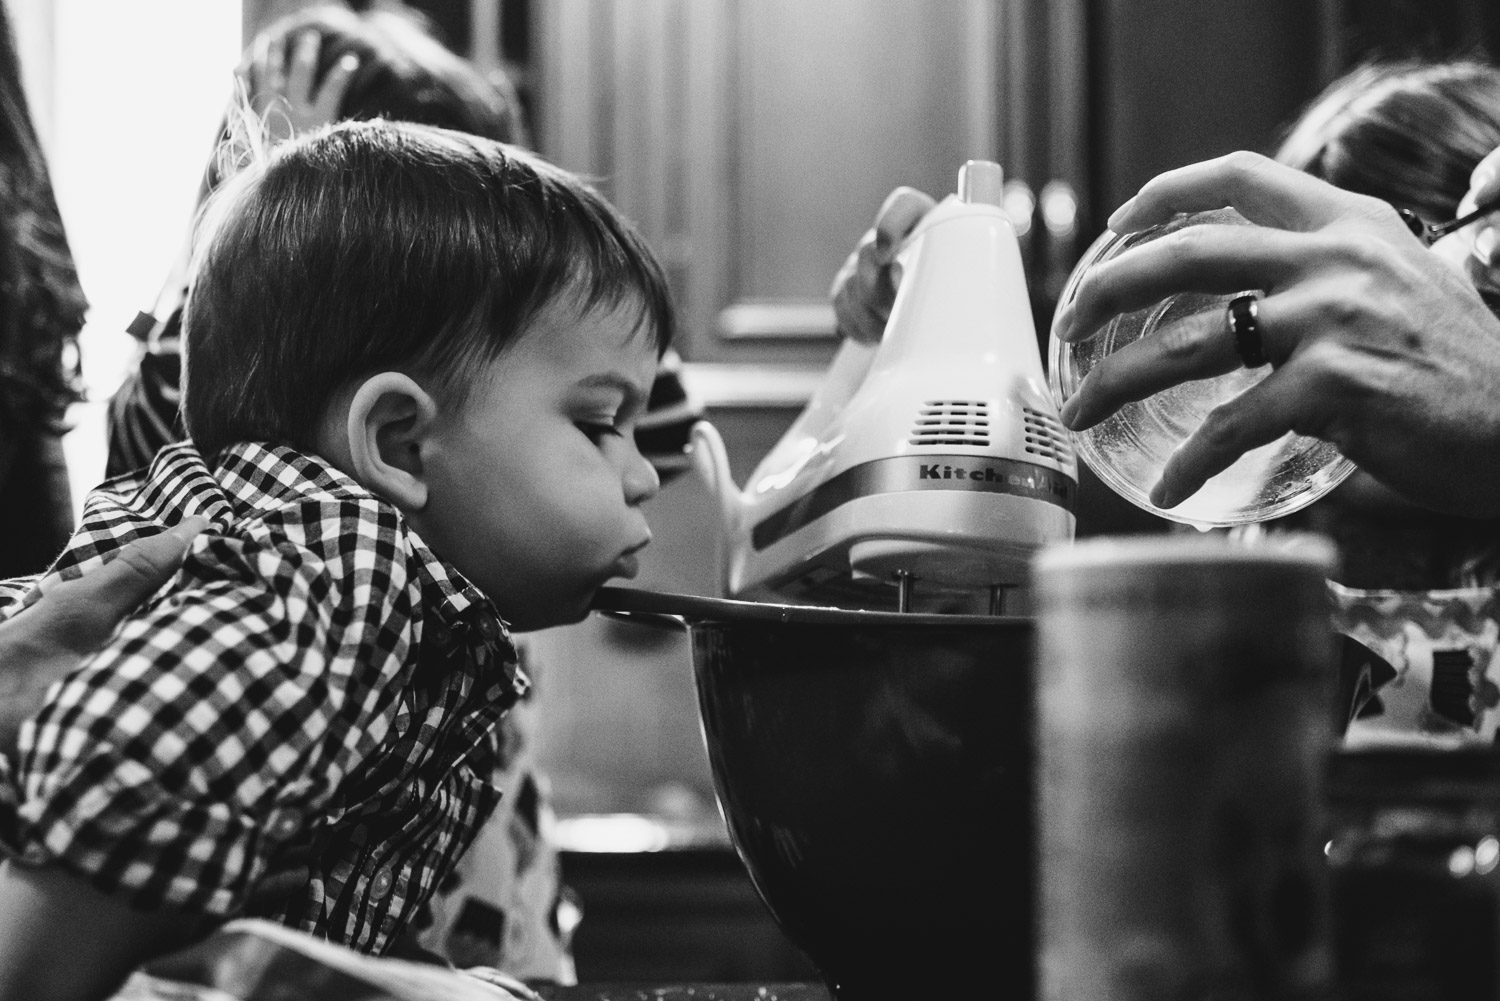 A baby boy peers over the edge of the mixing bowl while baking.